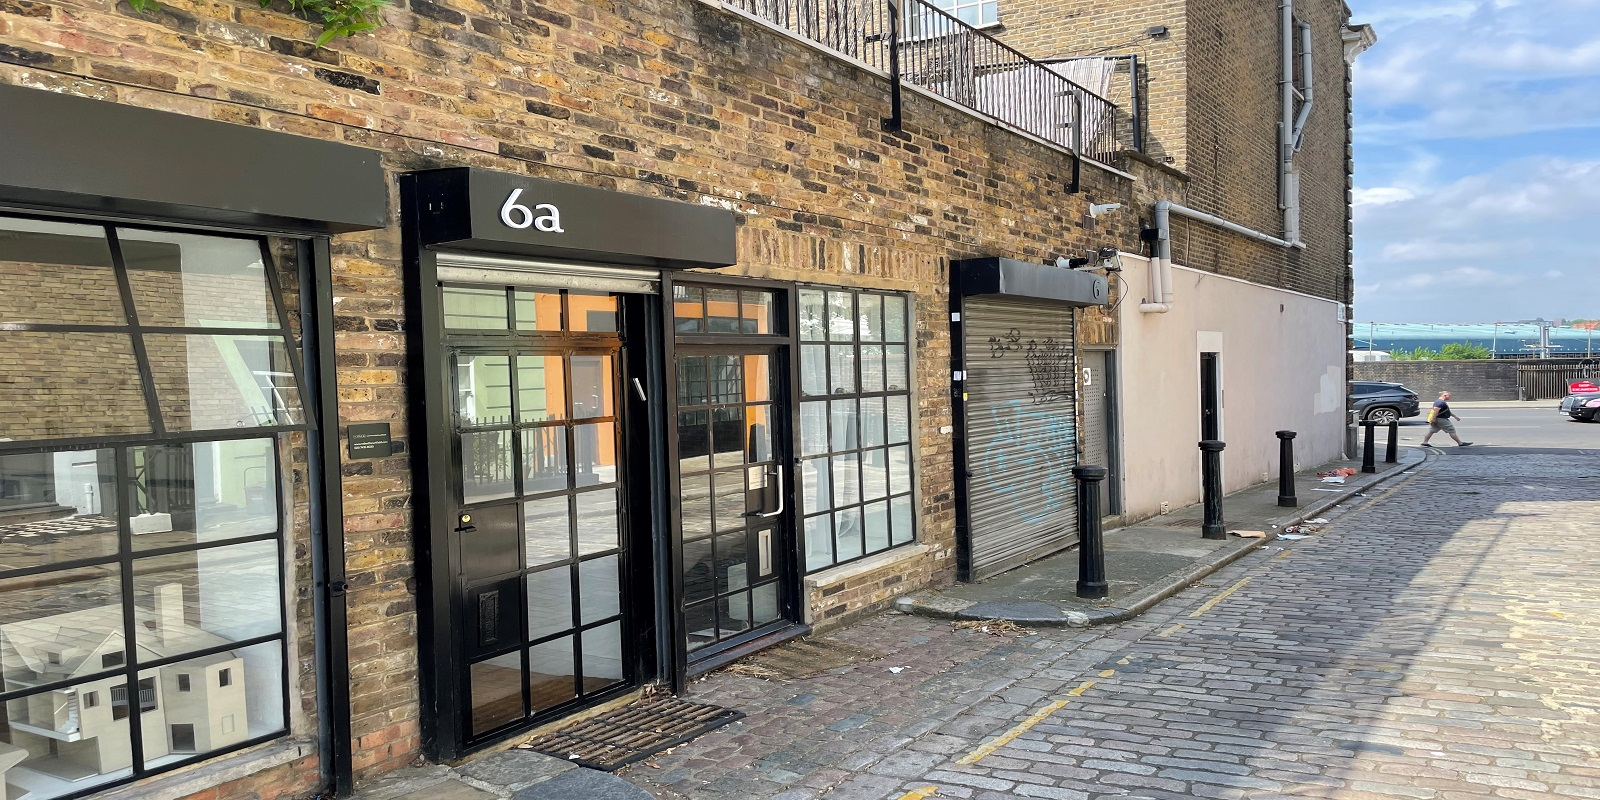 PRIME LOCATION & SELF-CONTAINED GROUND FLOOR OFFICES TO BE LET